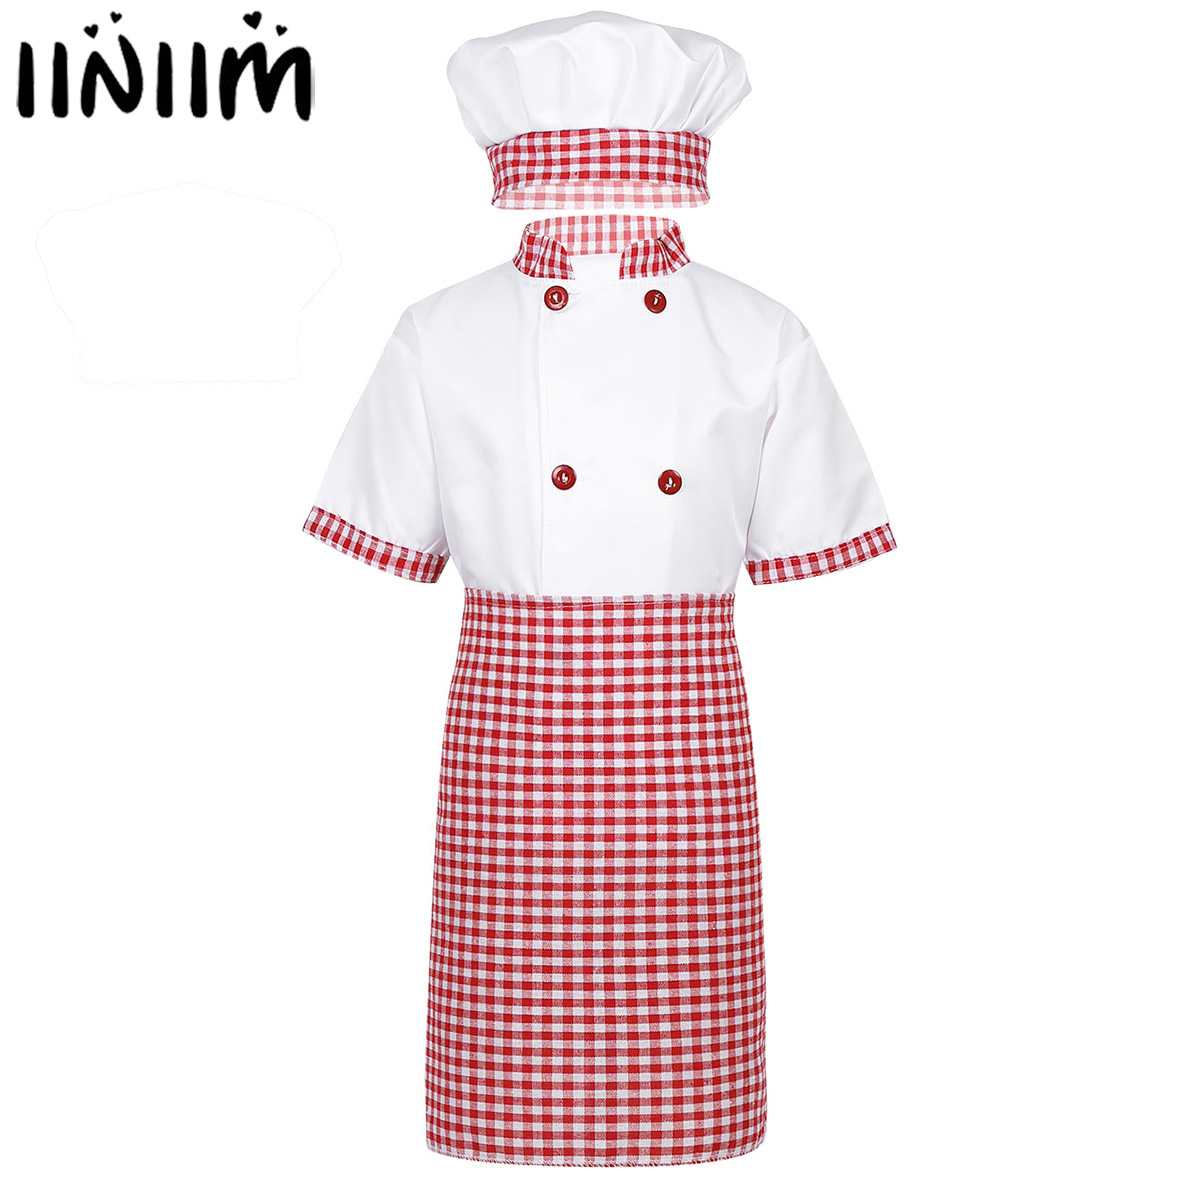 iiniim Unisex Kids Boys Girls Chef Uniform Role Play Jacket with Apron and Hat Set for Halloween Cosplay Party Costume